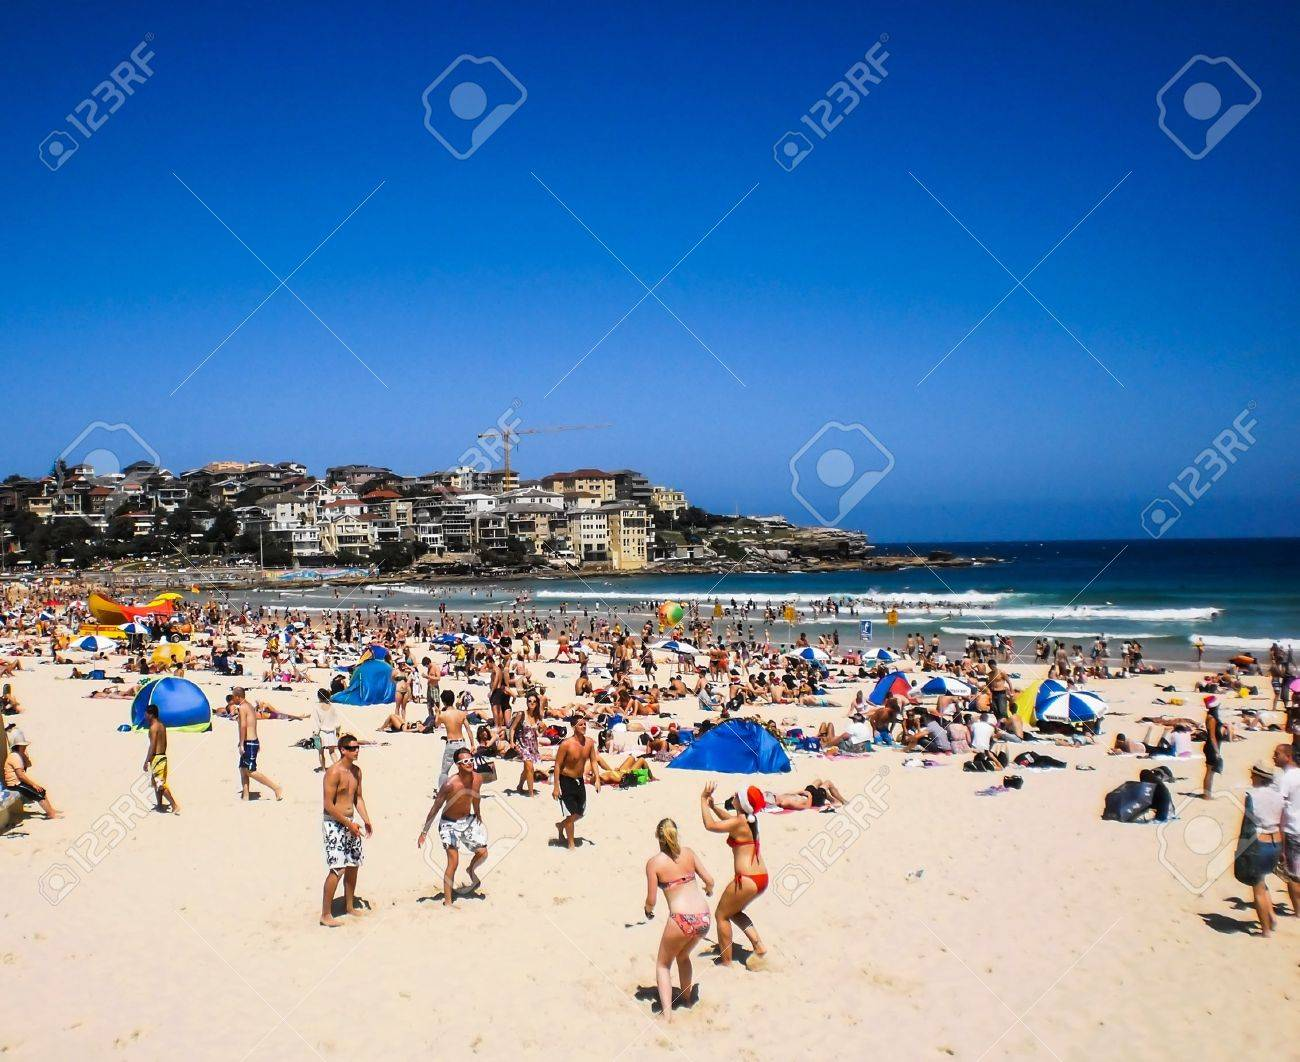 People Relaxing At Bondi Beach On Christmas Day Stock Photo